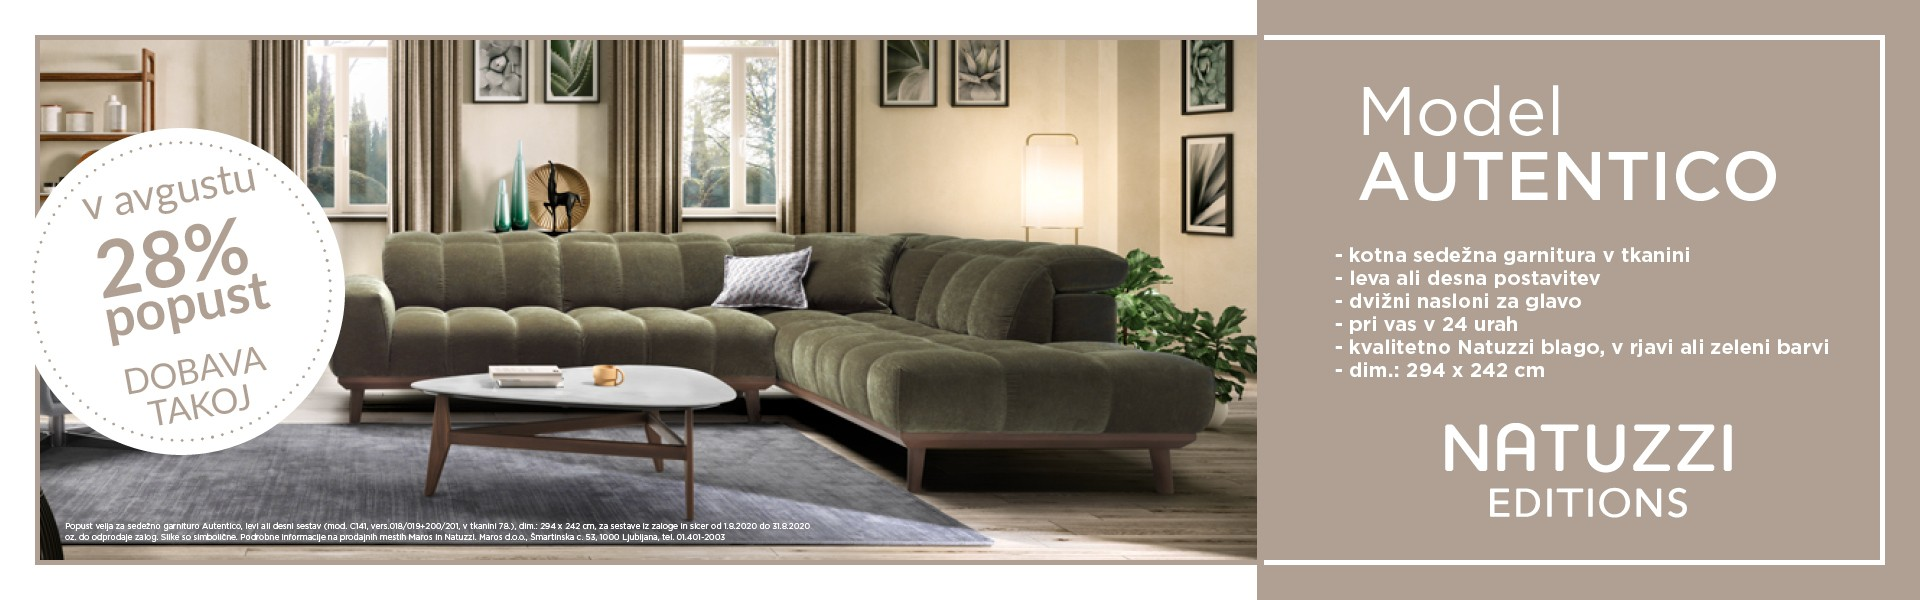 Upholstered in leather or fabric, each model is a luxury sofa handcrafted in italy. Natuzzi Editions